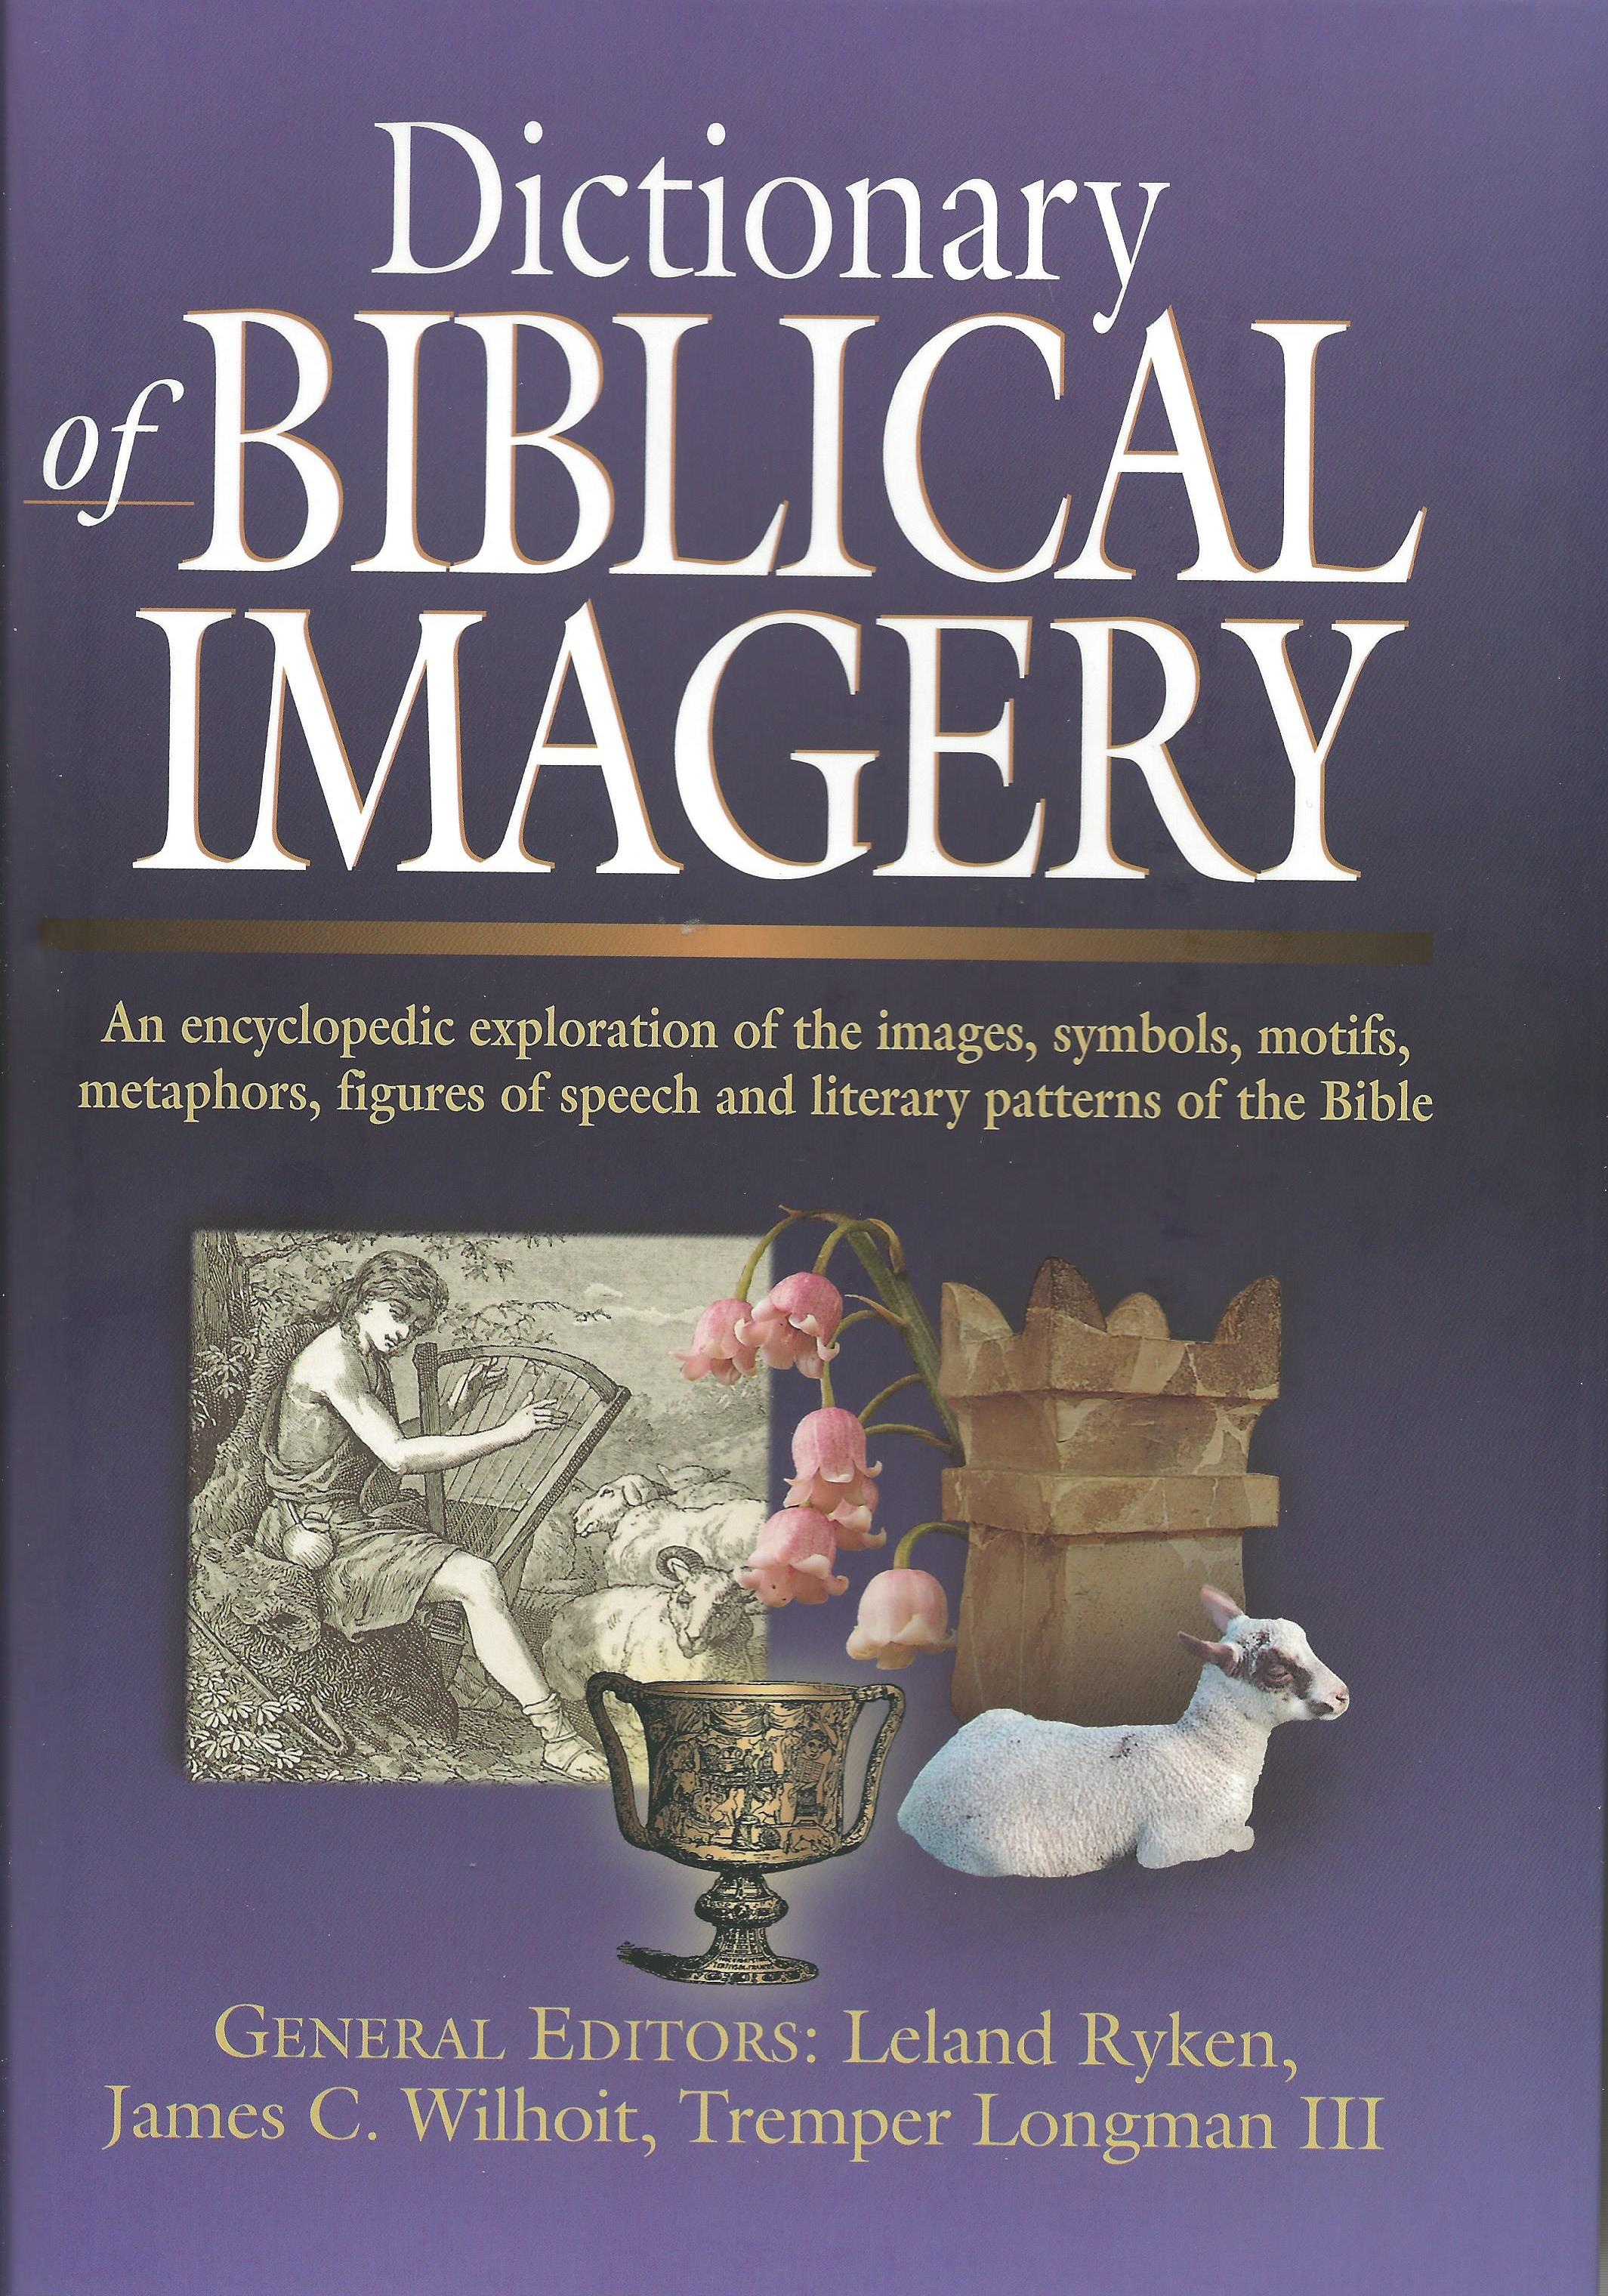 DICTIONARY OF BIBLICAL IMAGERY Leland Ryken